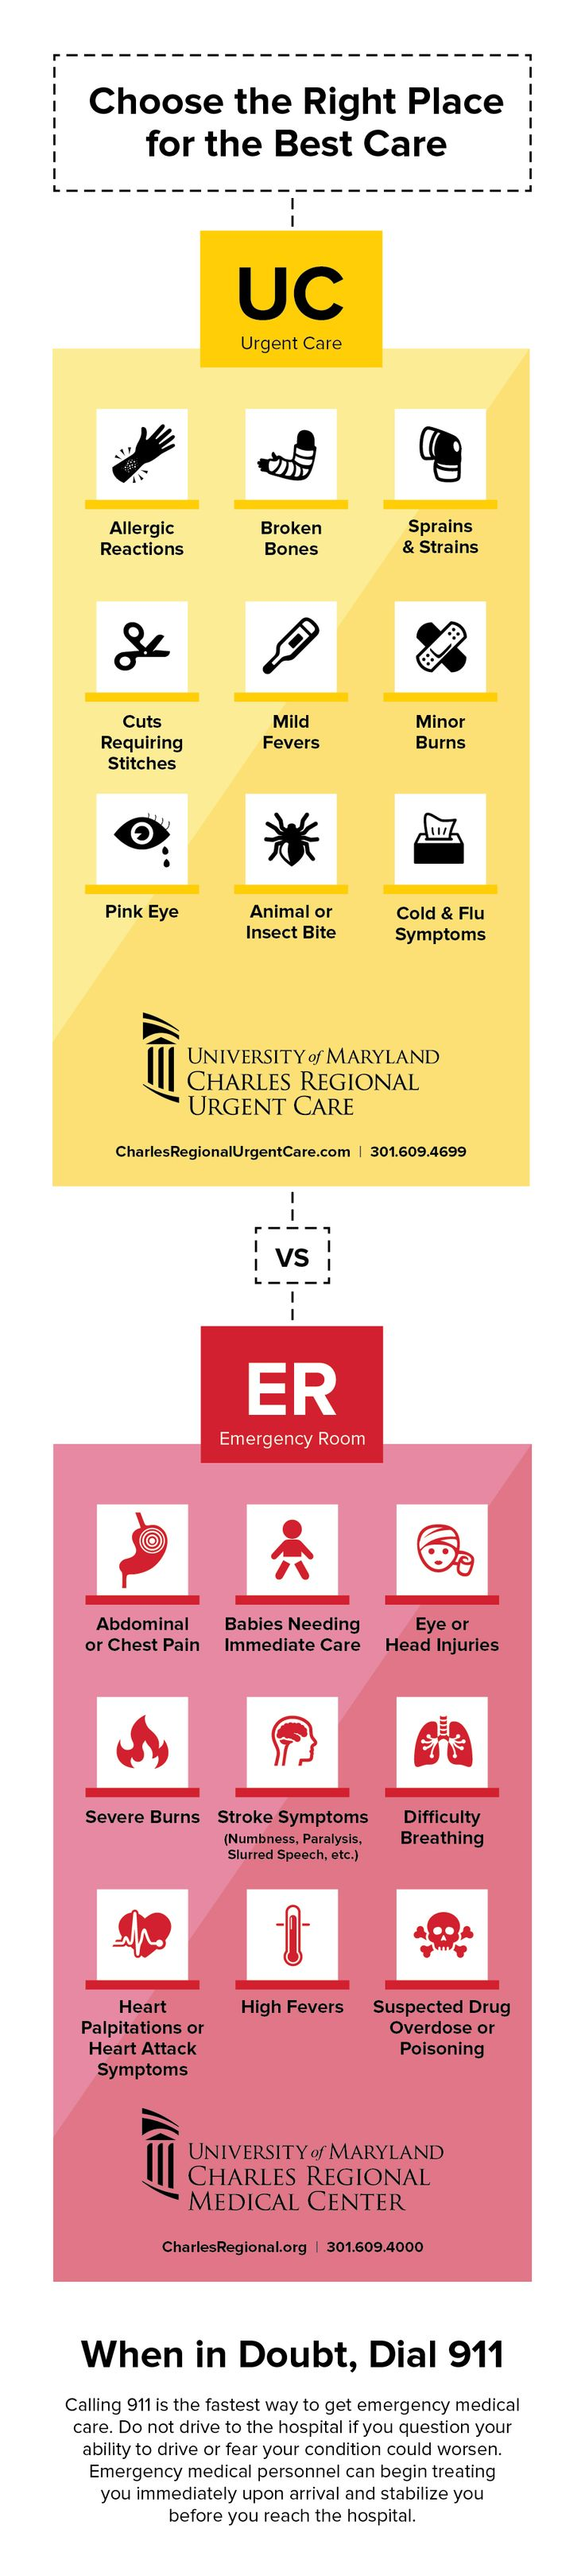 Urgent care or the emergency room? If you're sick or injured, this infographic will help you decide where you should go for your symptoms. #HealthCare